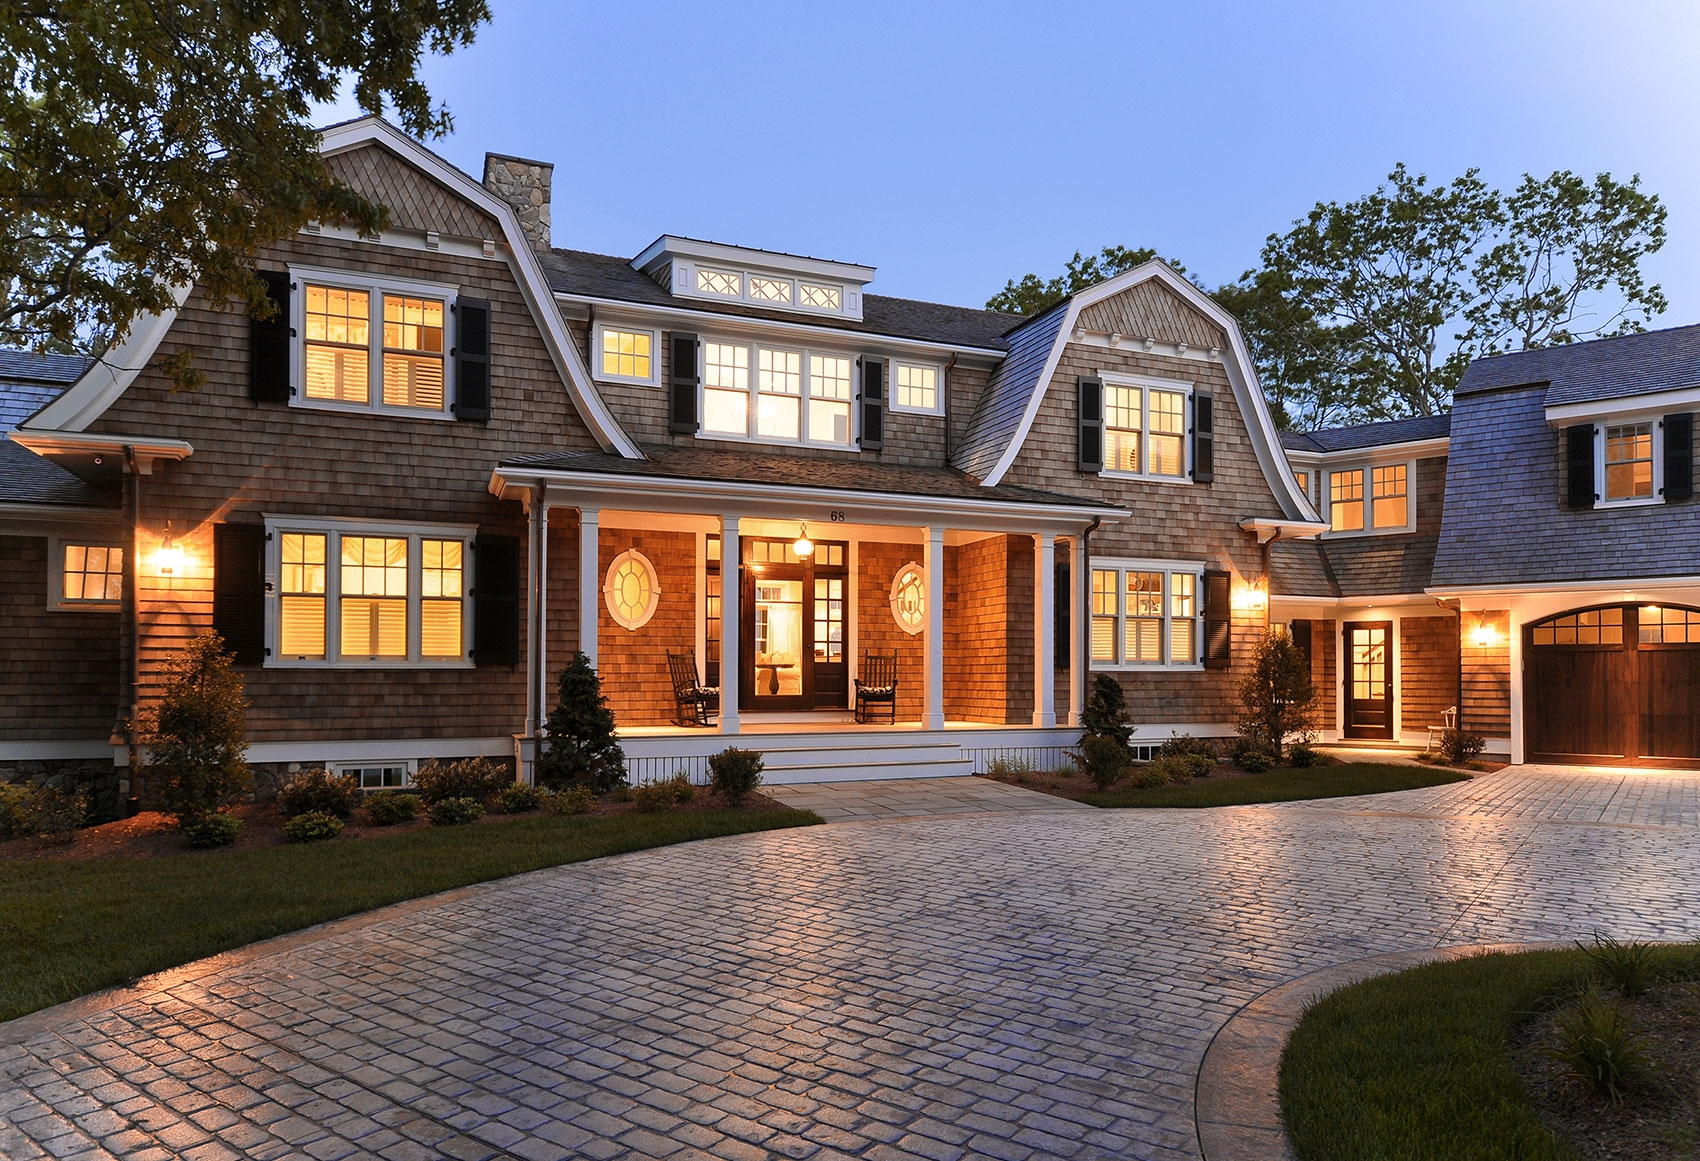 John Dvorsack Architect Llc Is A Small Residential Architectural Firm Specializing In Custom Home Design Renovations And Waterfront Development